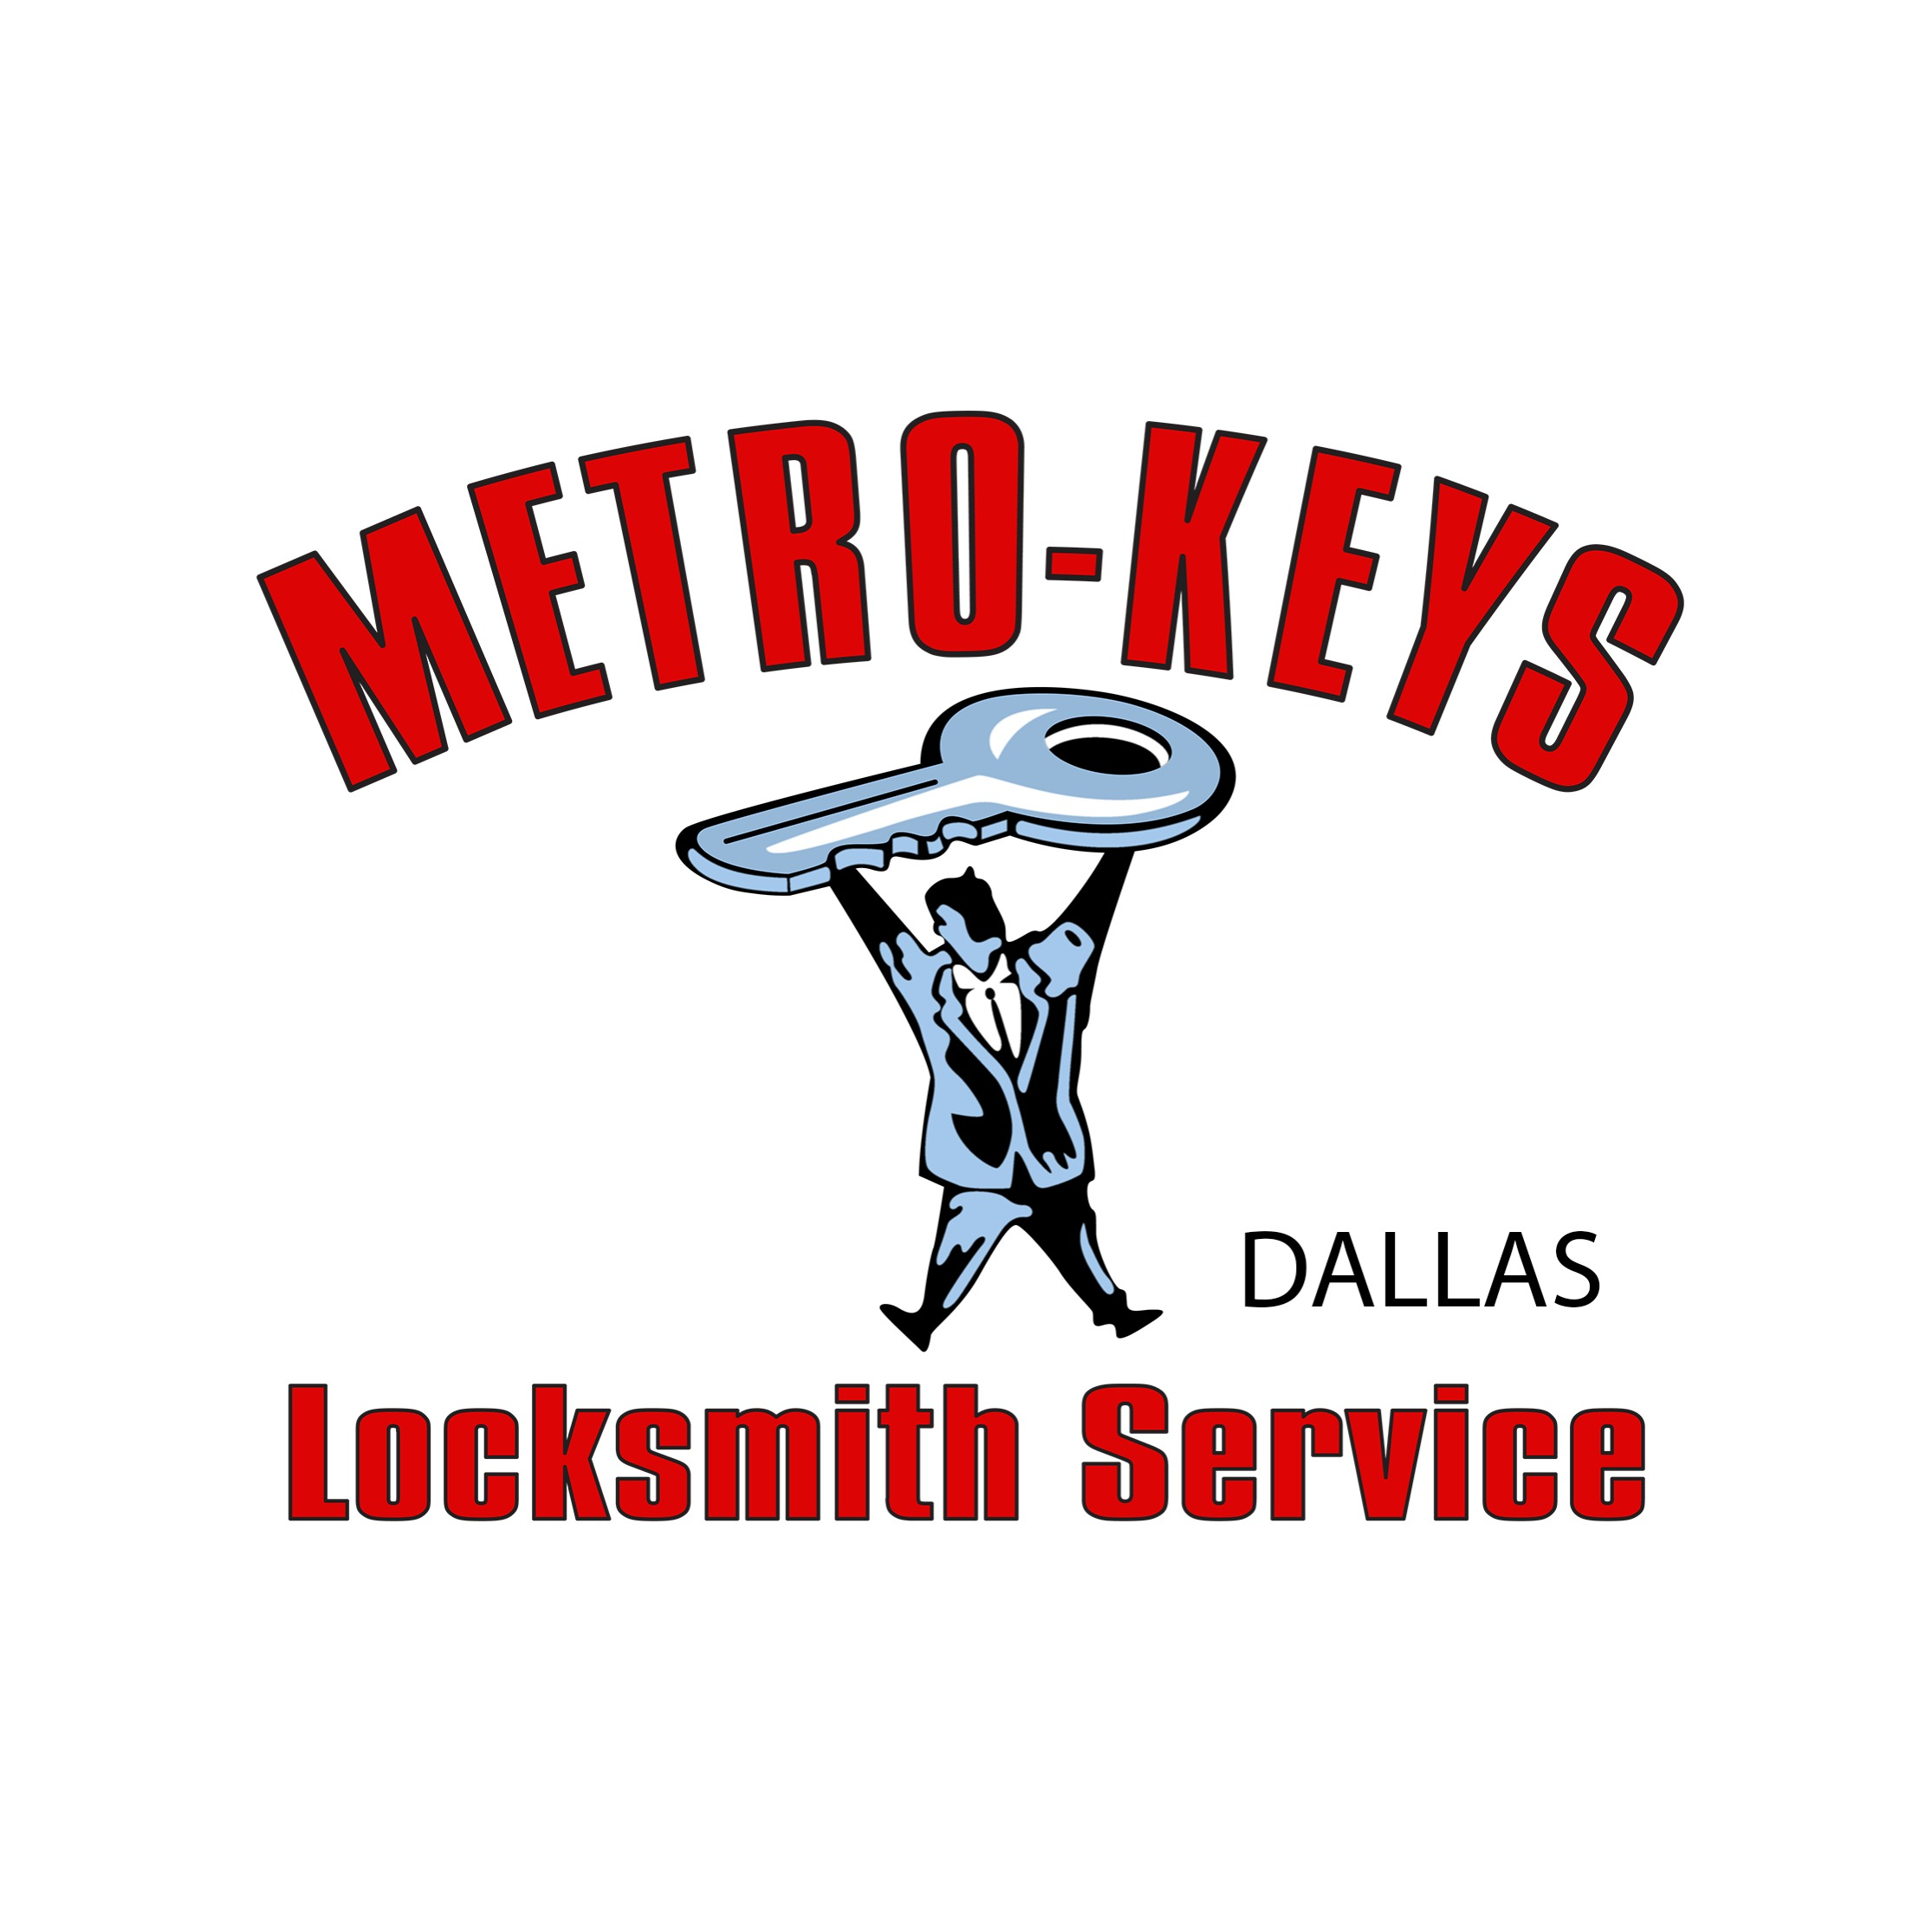 Metro-Keys Locksmith Service - Dallas